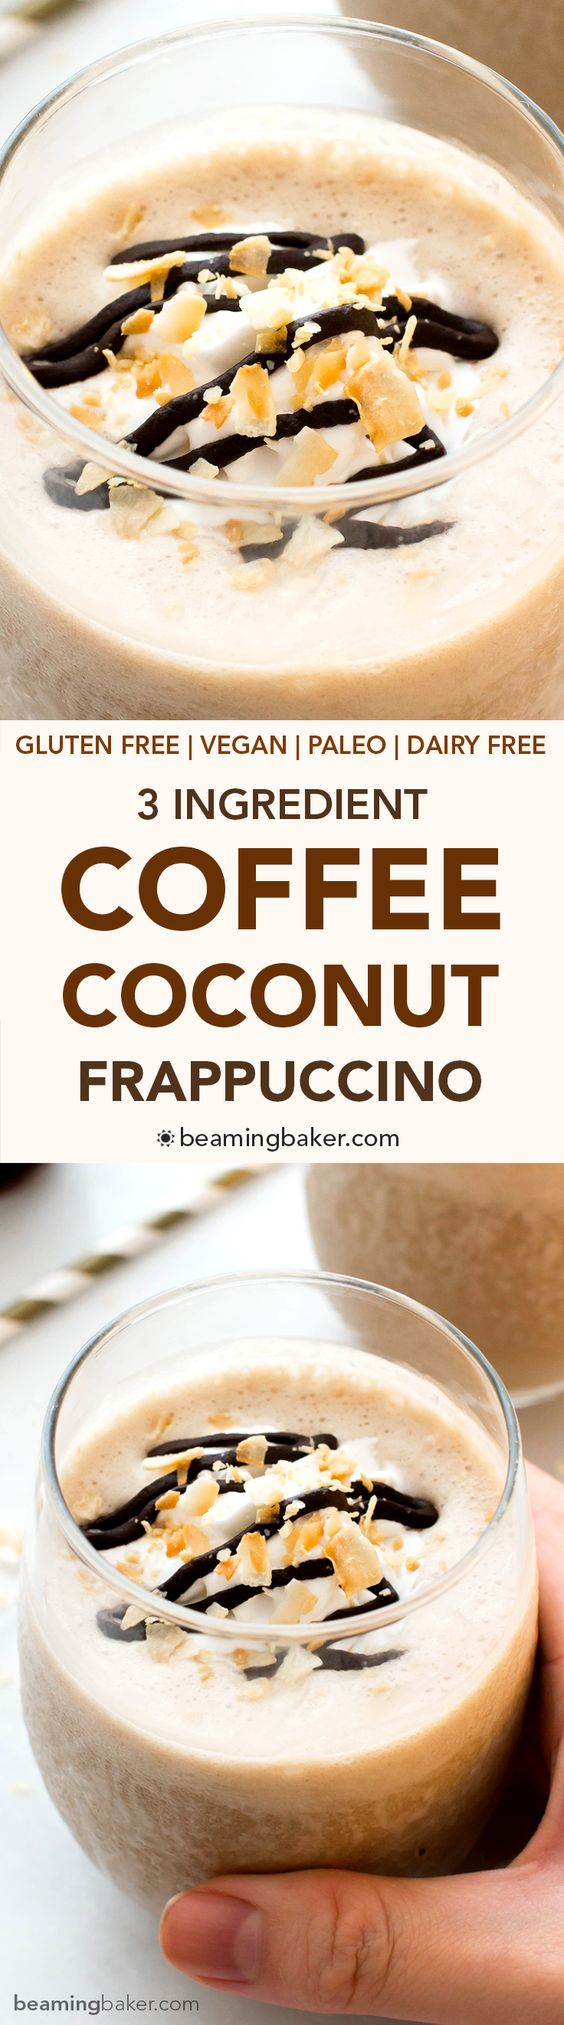 3-ingredient-coffee-coconut-frappuccino-paleo-dairy-free-gluten-free